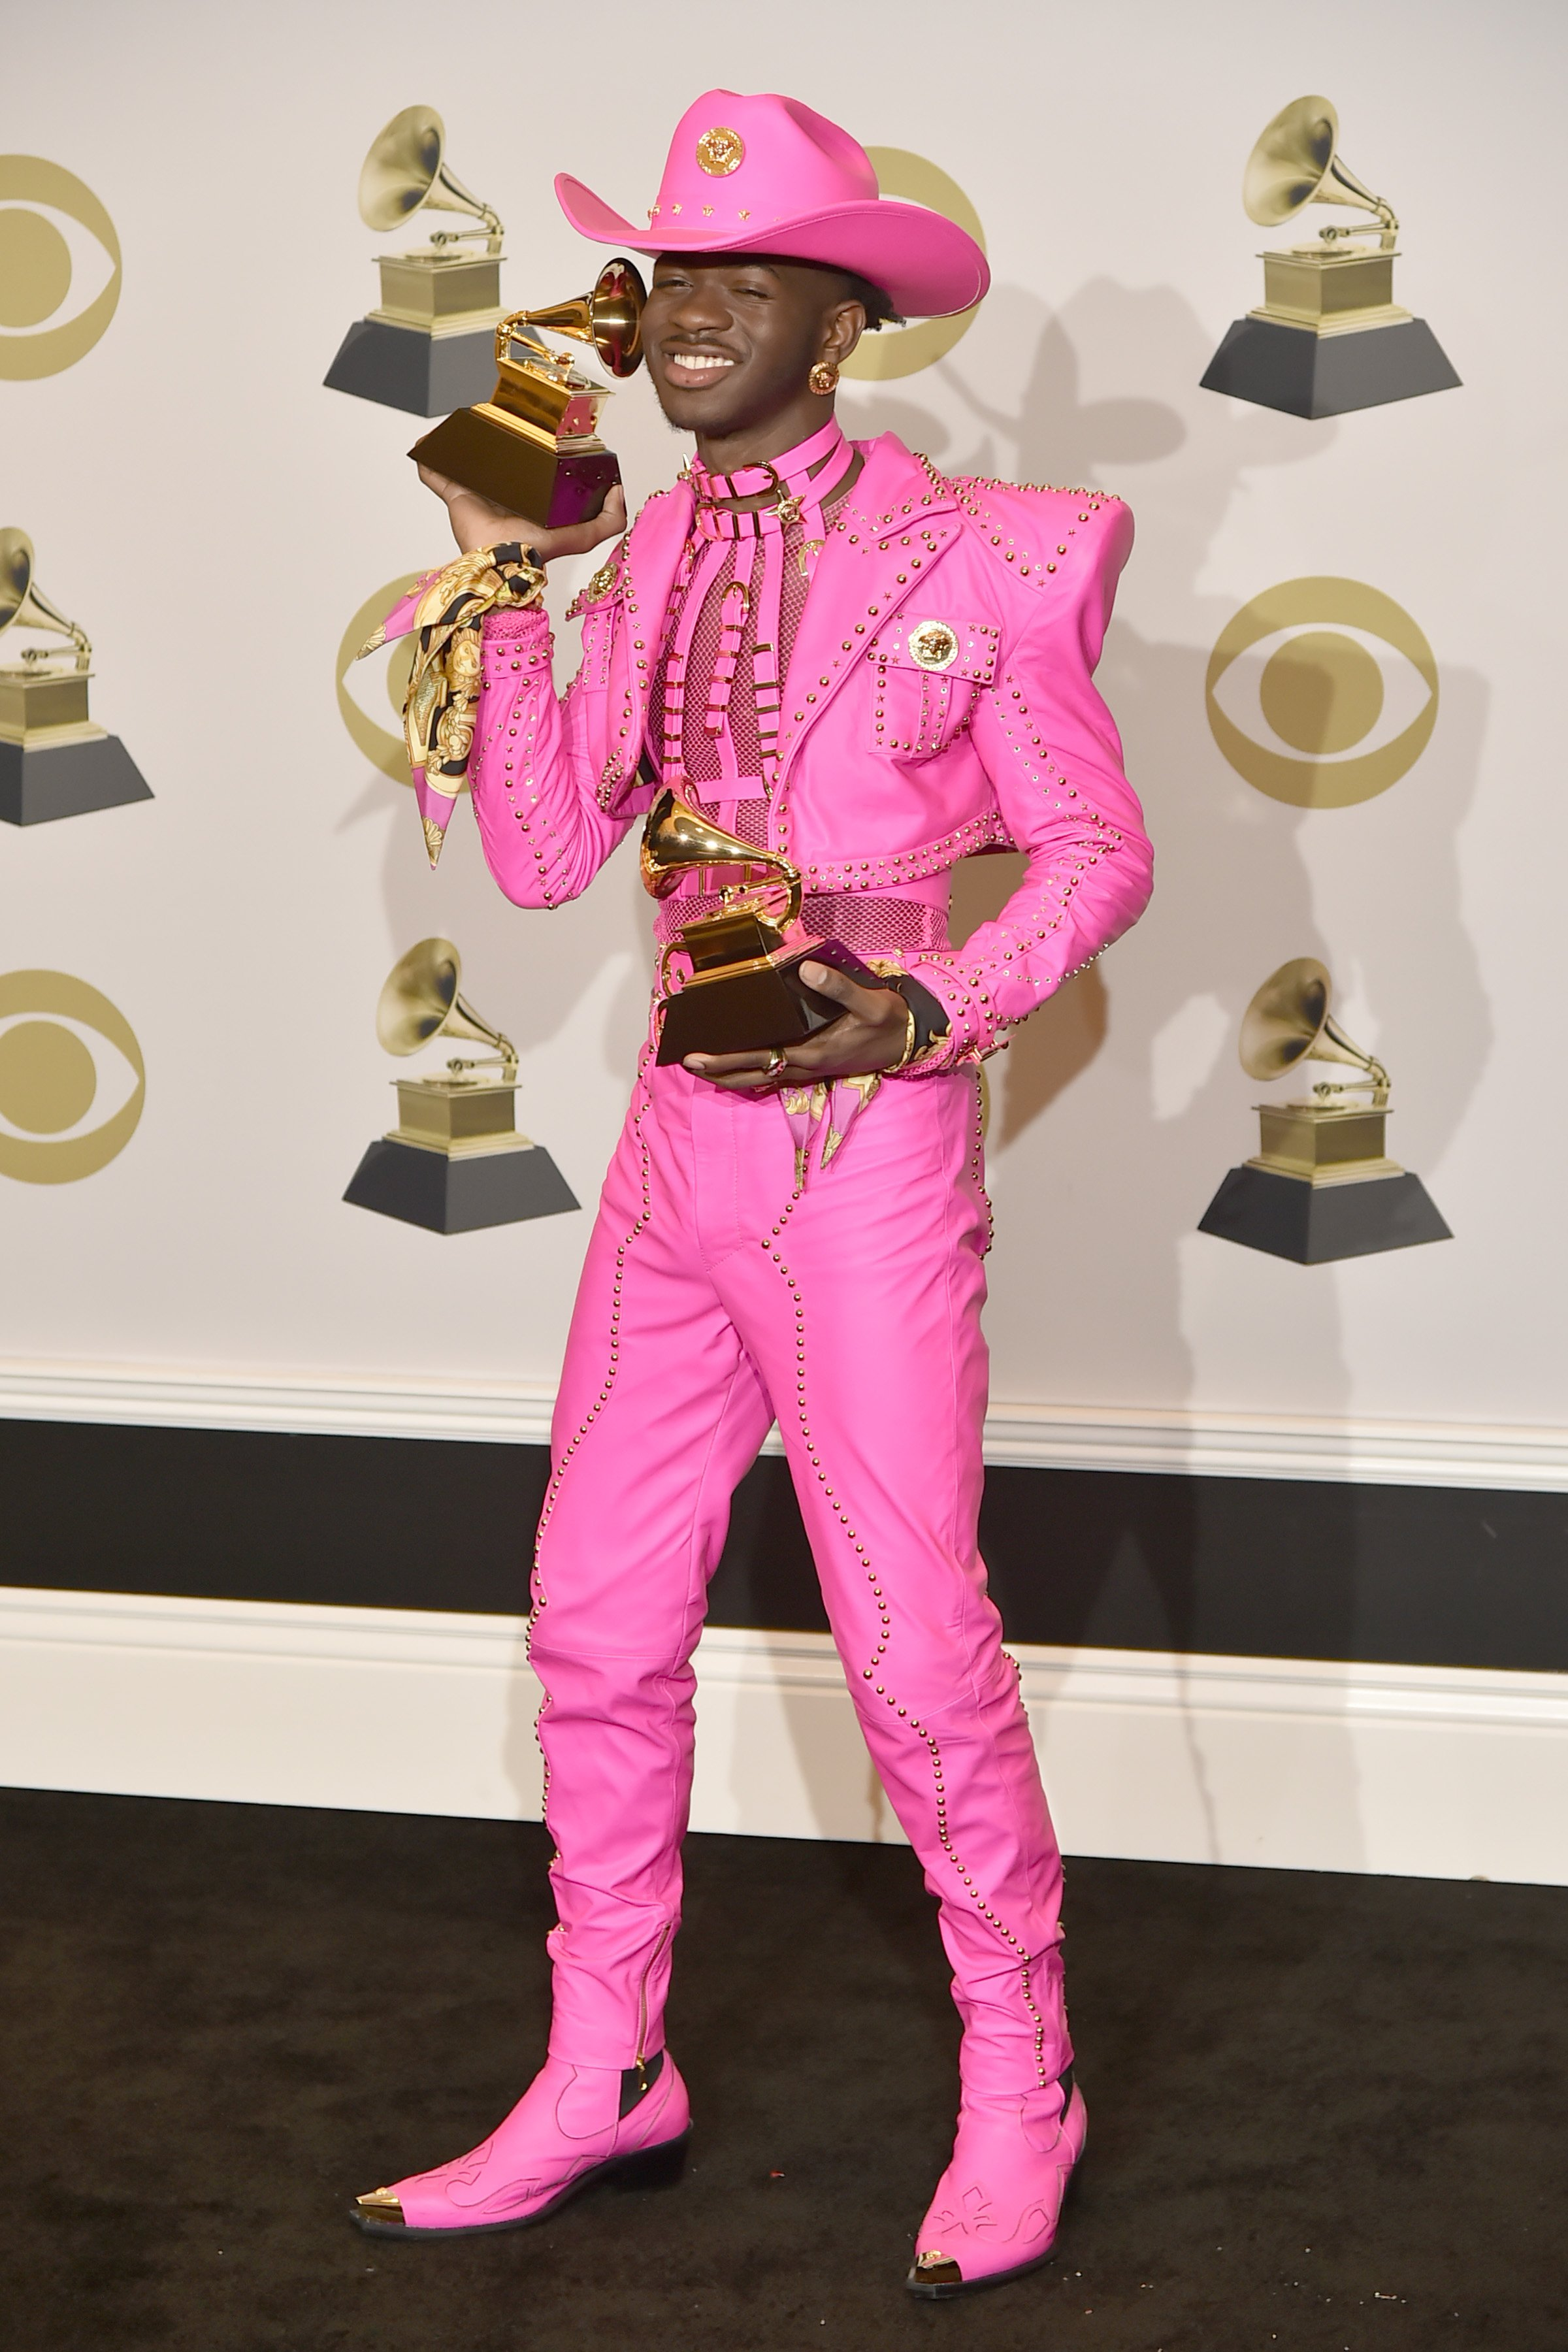 Lil Nas X at the 62nd Annual Grammy Awards on Jan. 26, 2020 in California | Photo: Getty Images